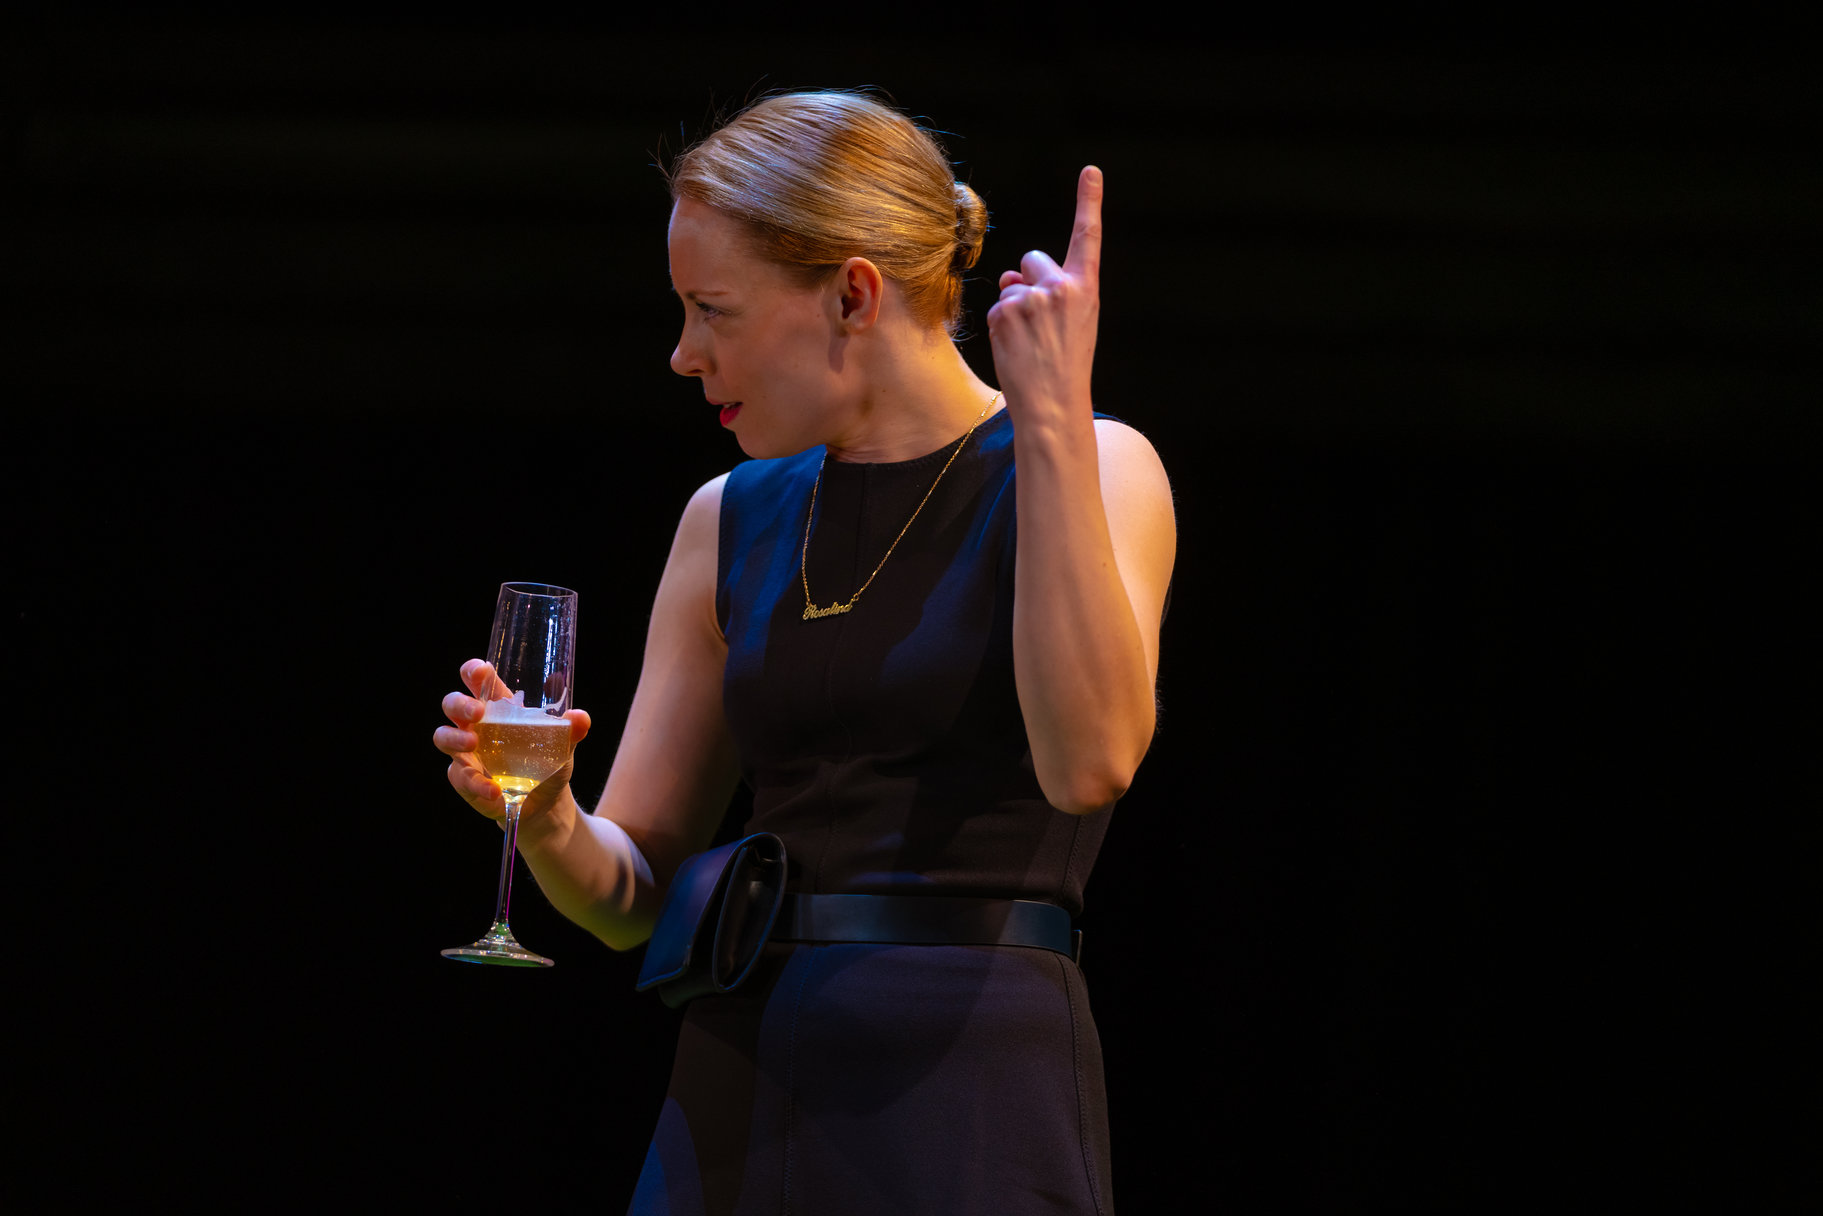 A woman in a black dress drinking champagne.